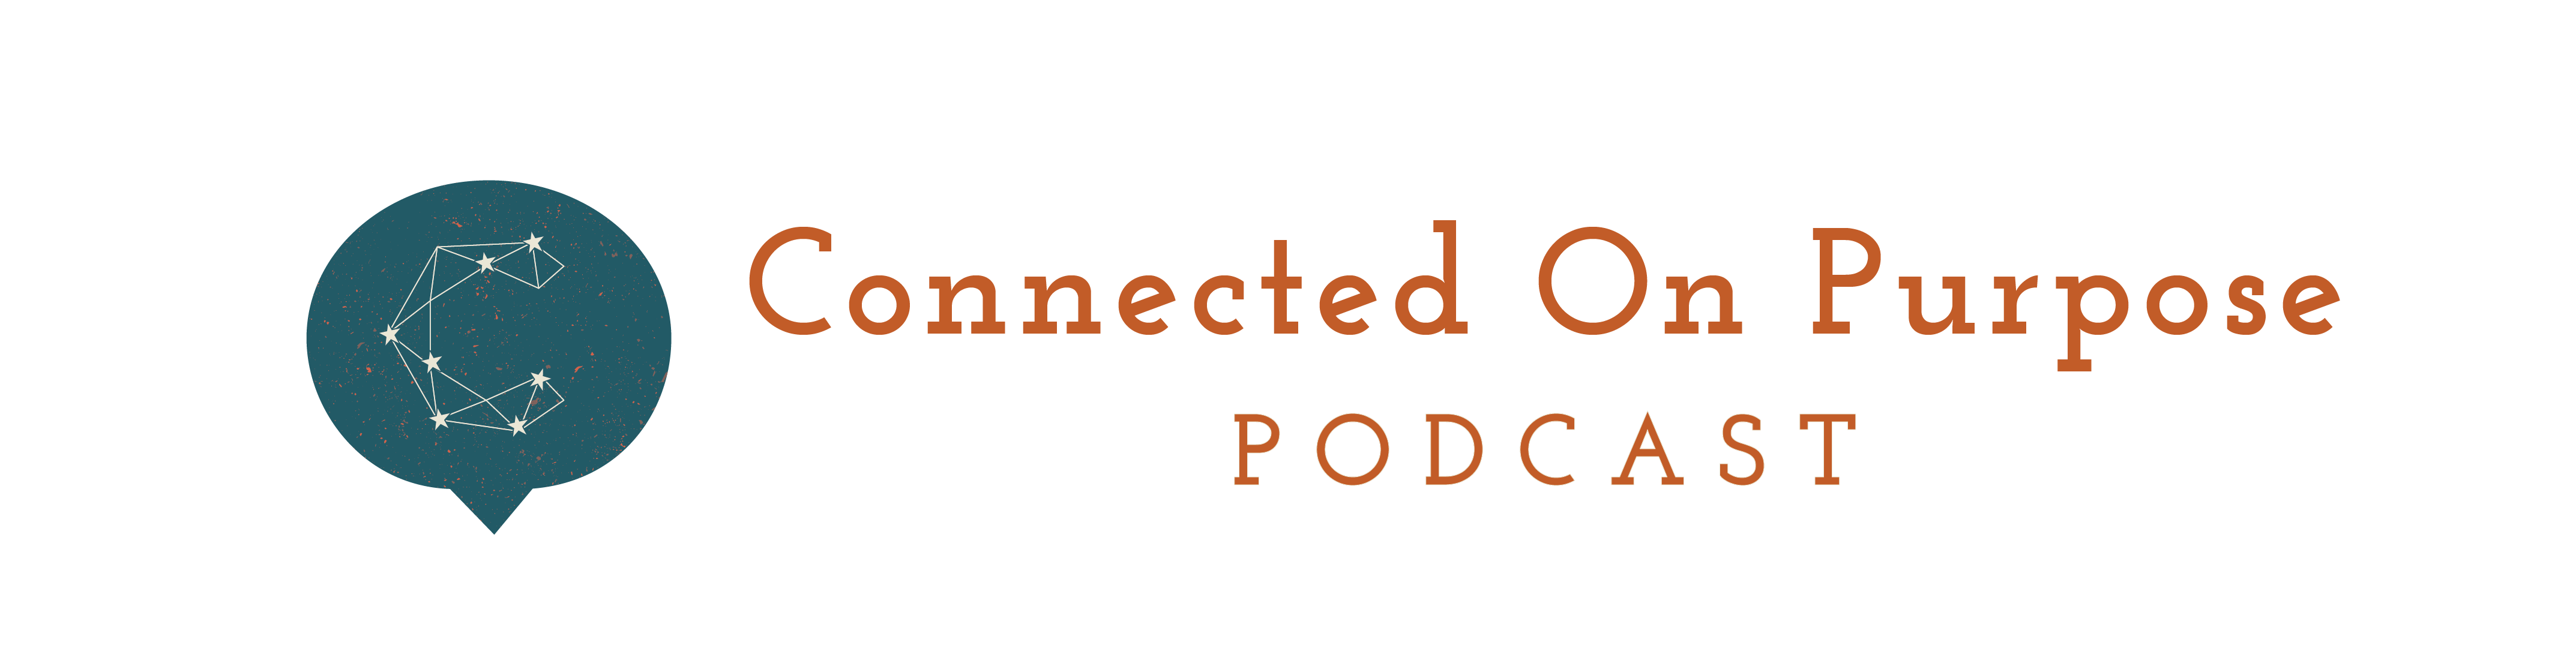 Connected On Purpose Podcast Logo